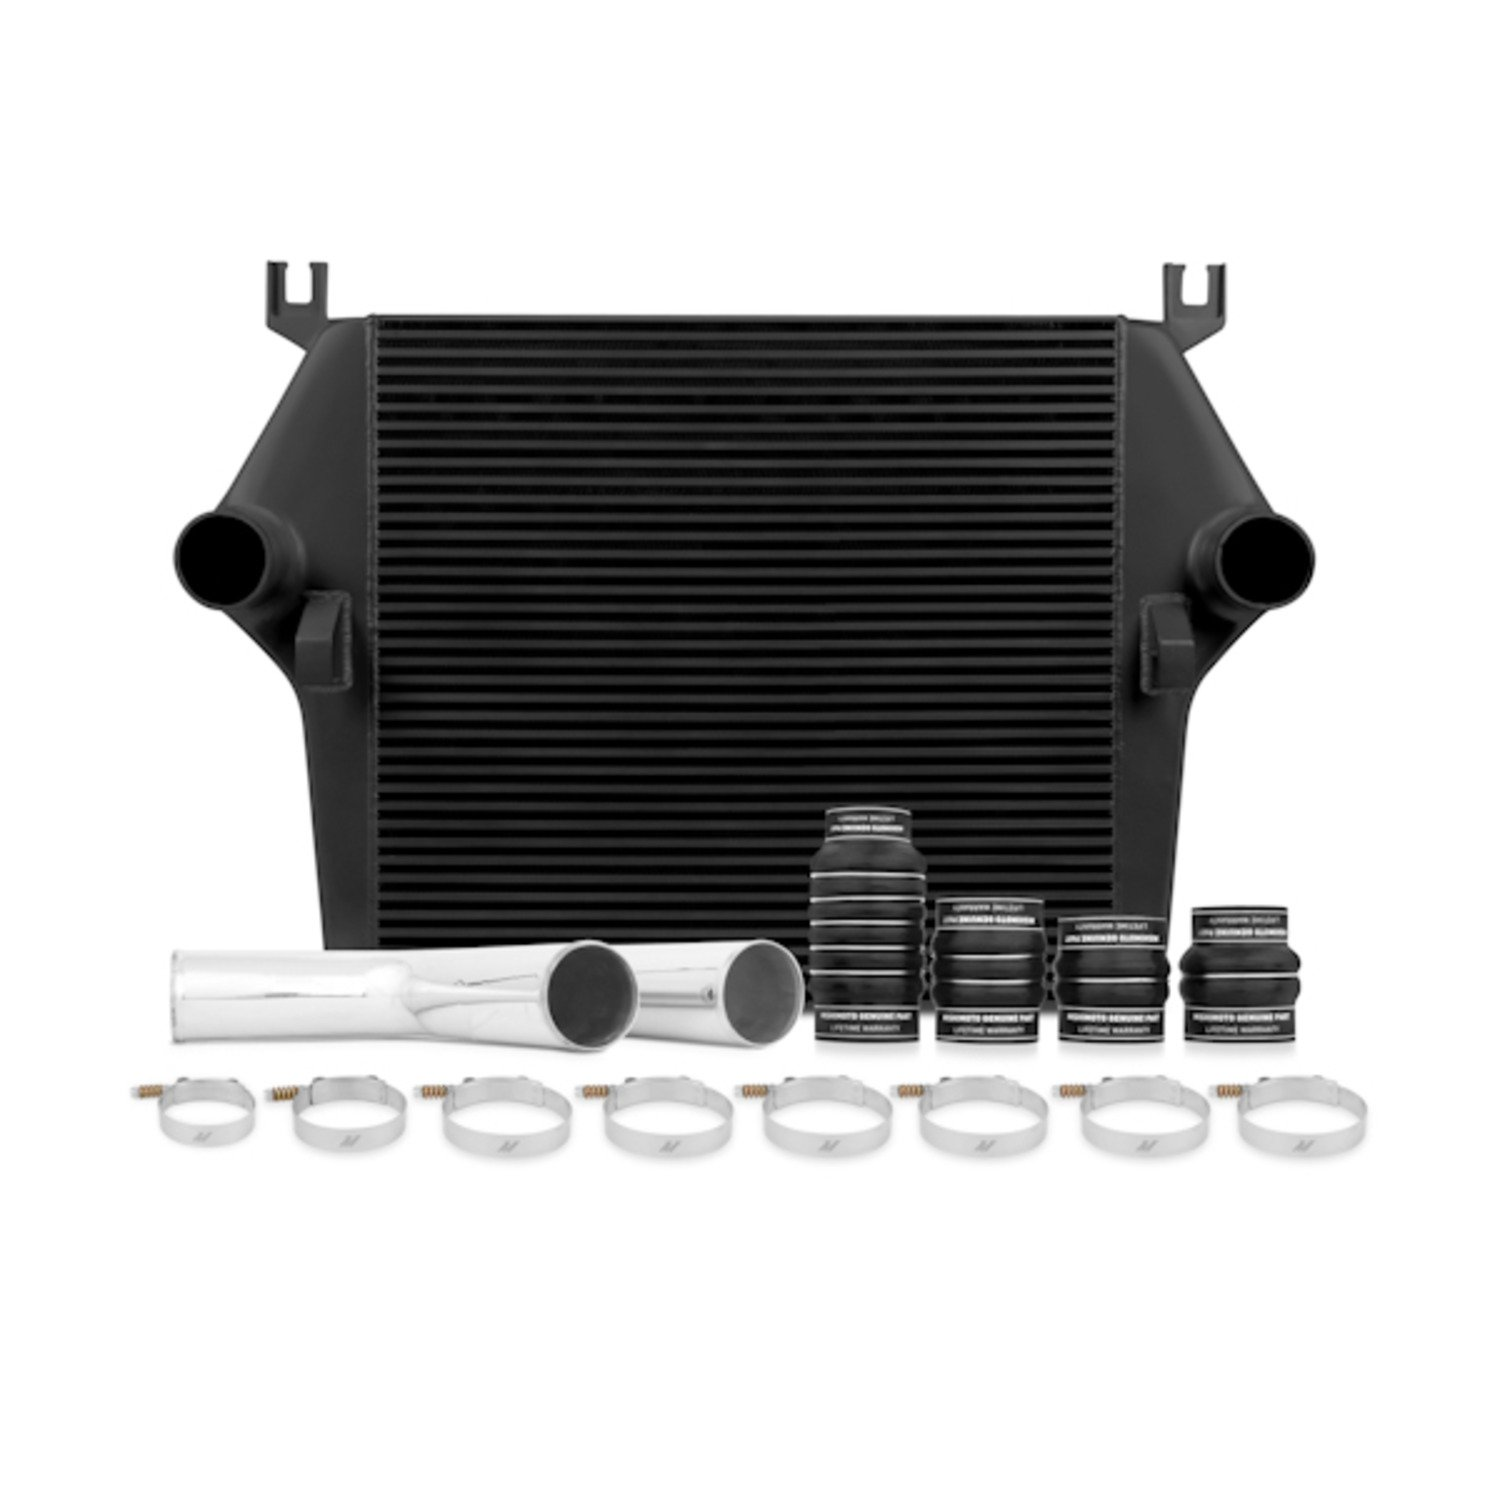 Mishimoto MMINT-RAM-03KBK Dodge 5.9L Cummins Intercooler Kit, 2003-2007, Black